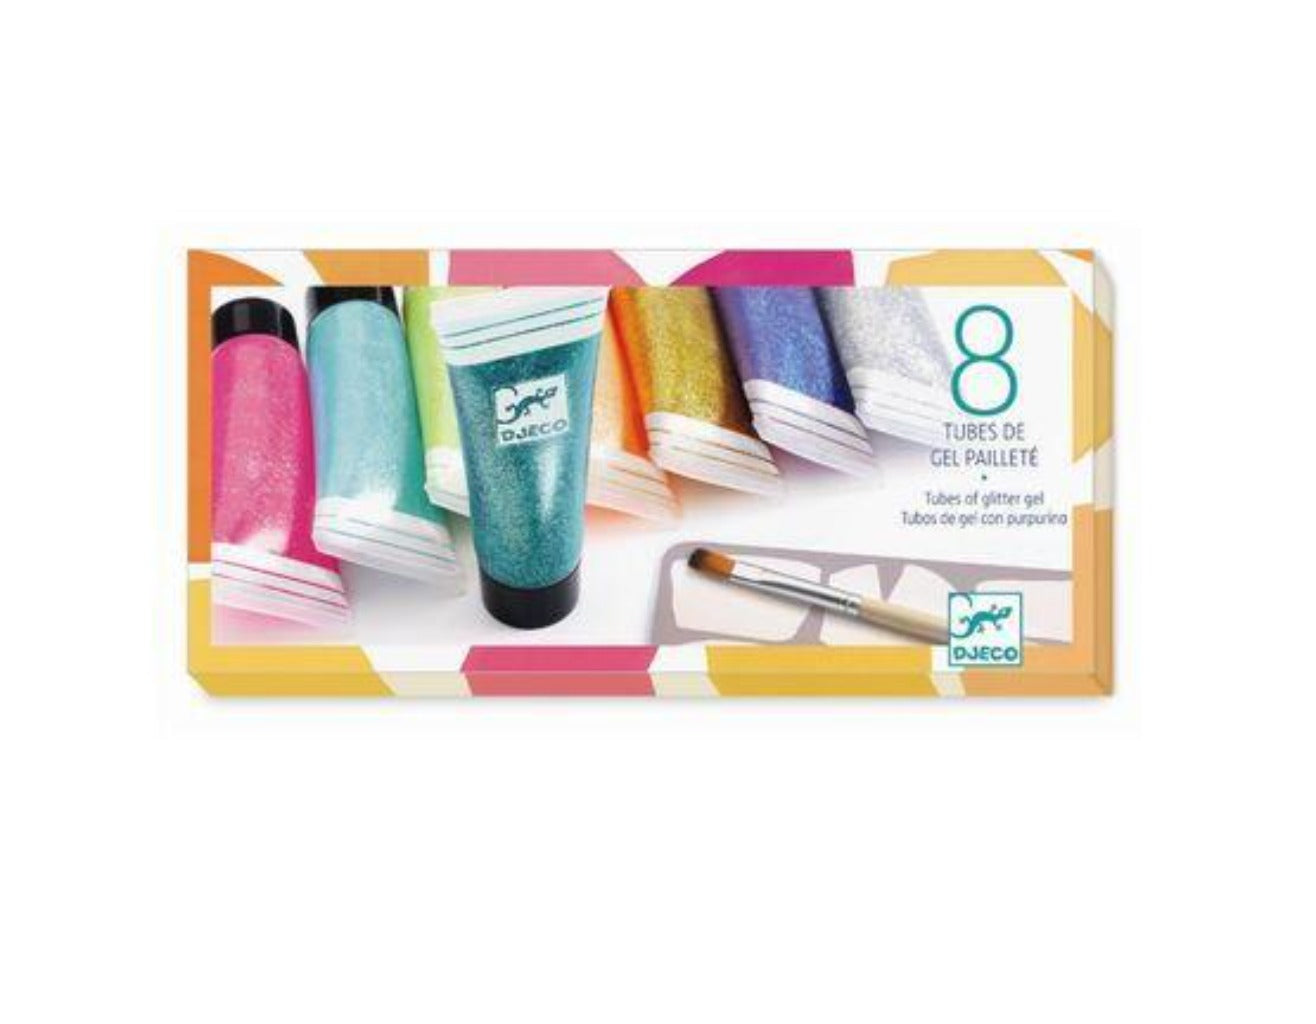 Glitter Gel Paint Set with Brush - 8 Tubes